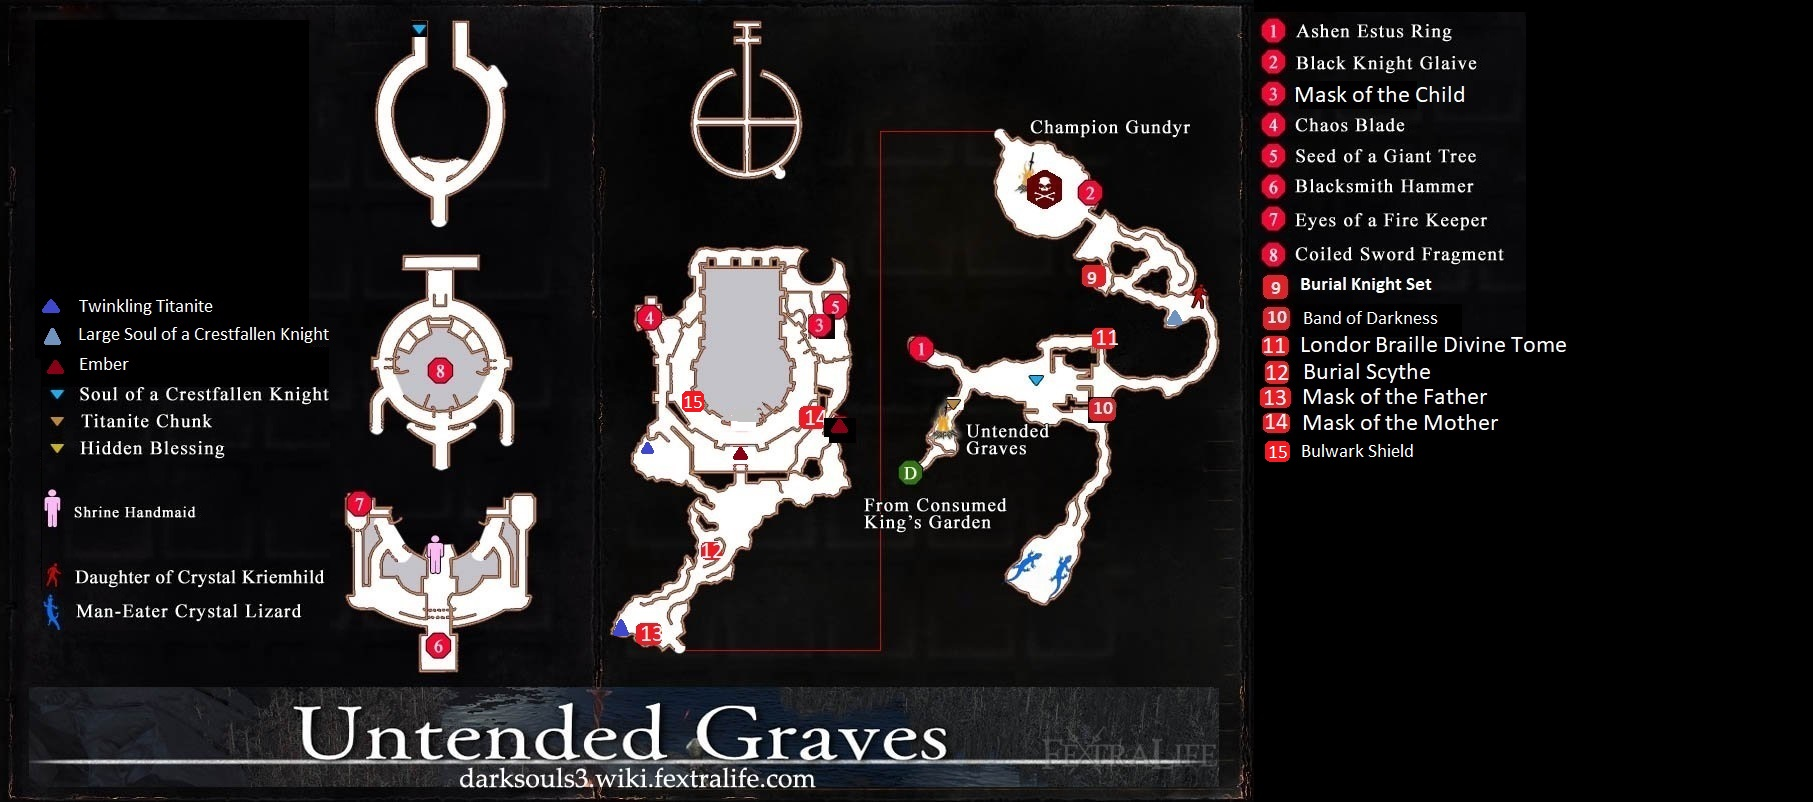 untended_graves_map1.jpg